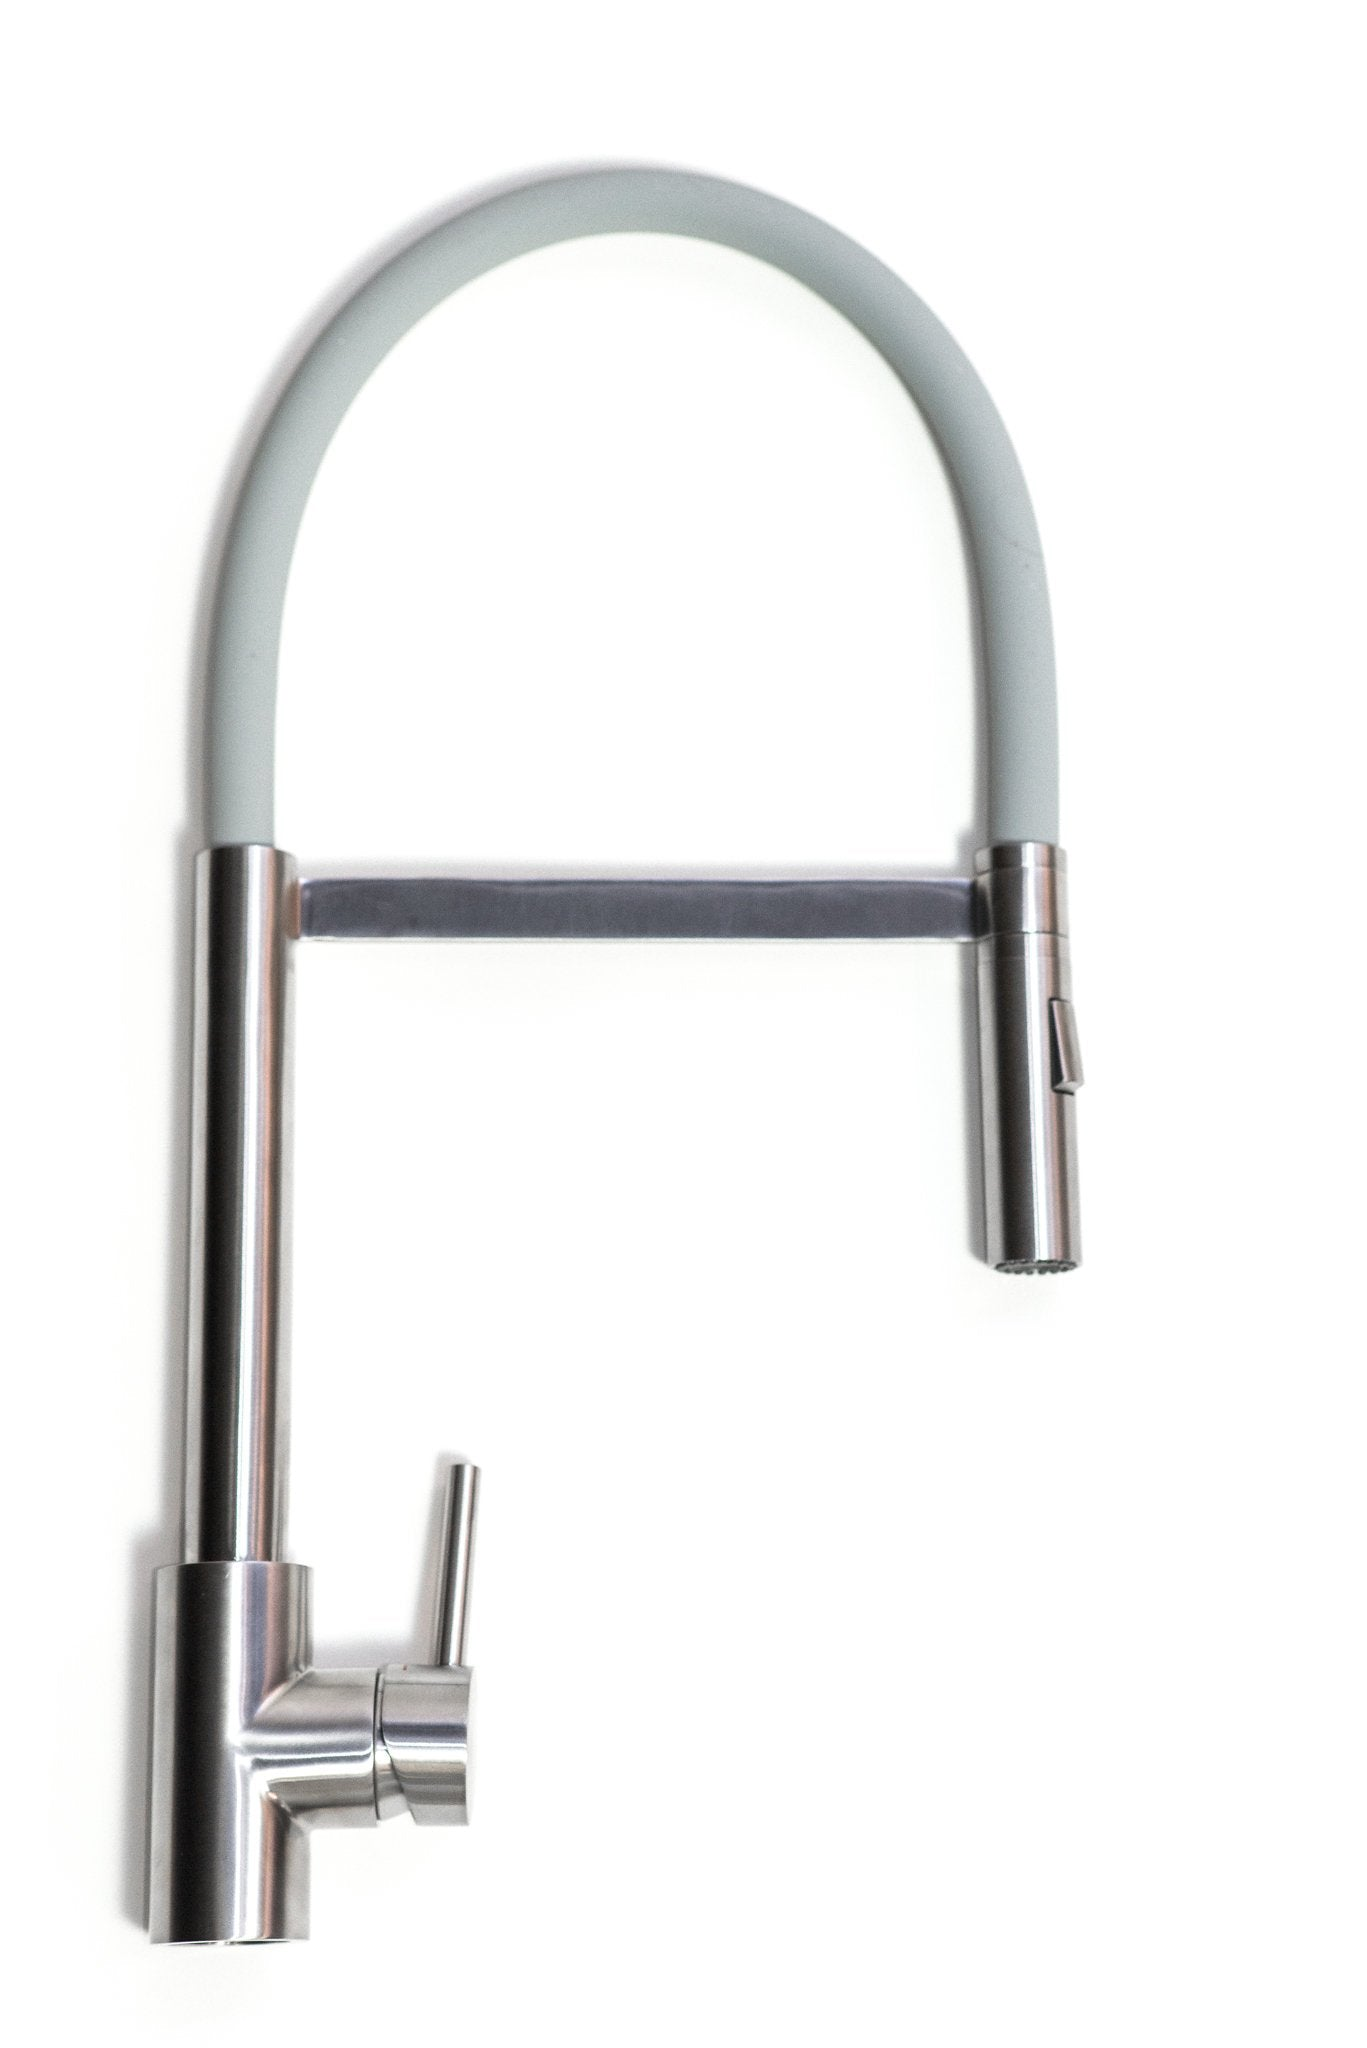 High-End Stainless Steel Kitchen Faucets | Lumen Faucets